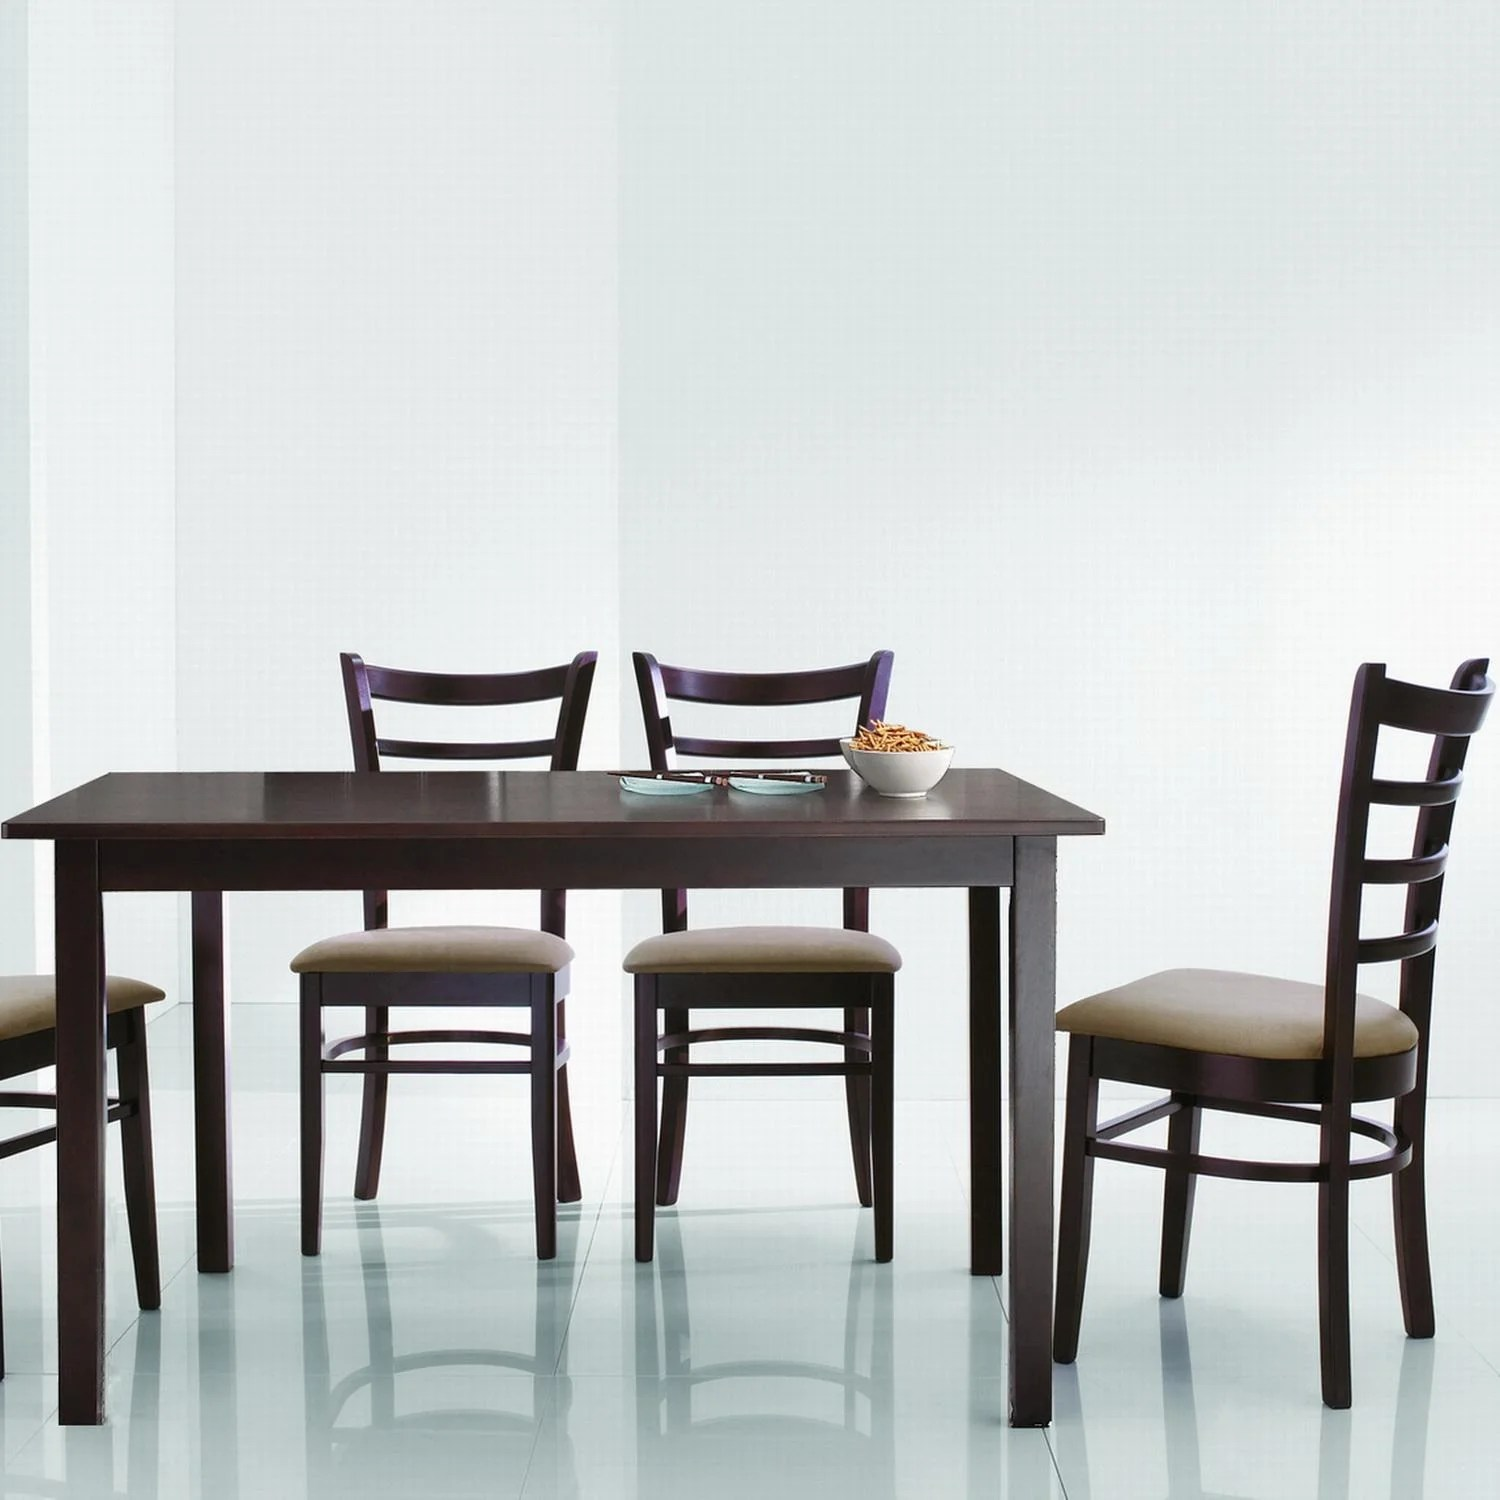 dark dining room fabulous options heds 1372 36 images of new in remarkable furniture glass dining room table with round top agreeable design rectangle brown marble and black